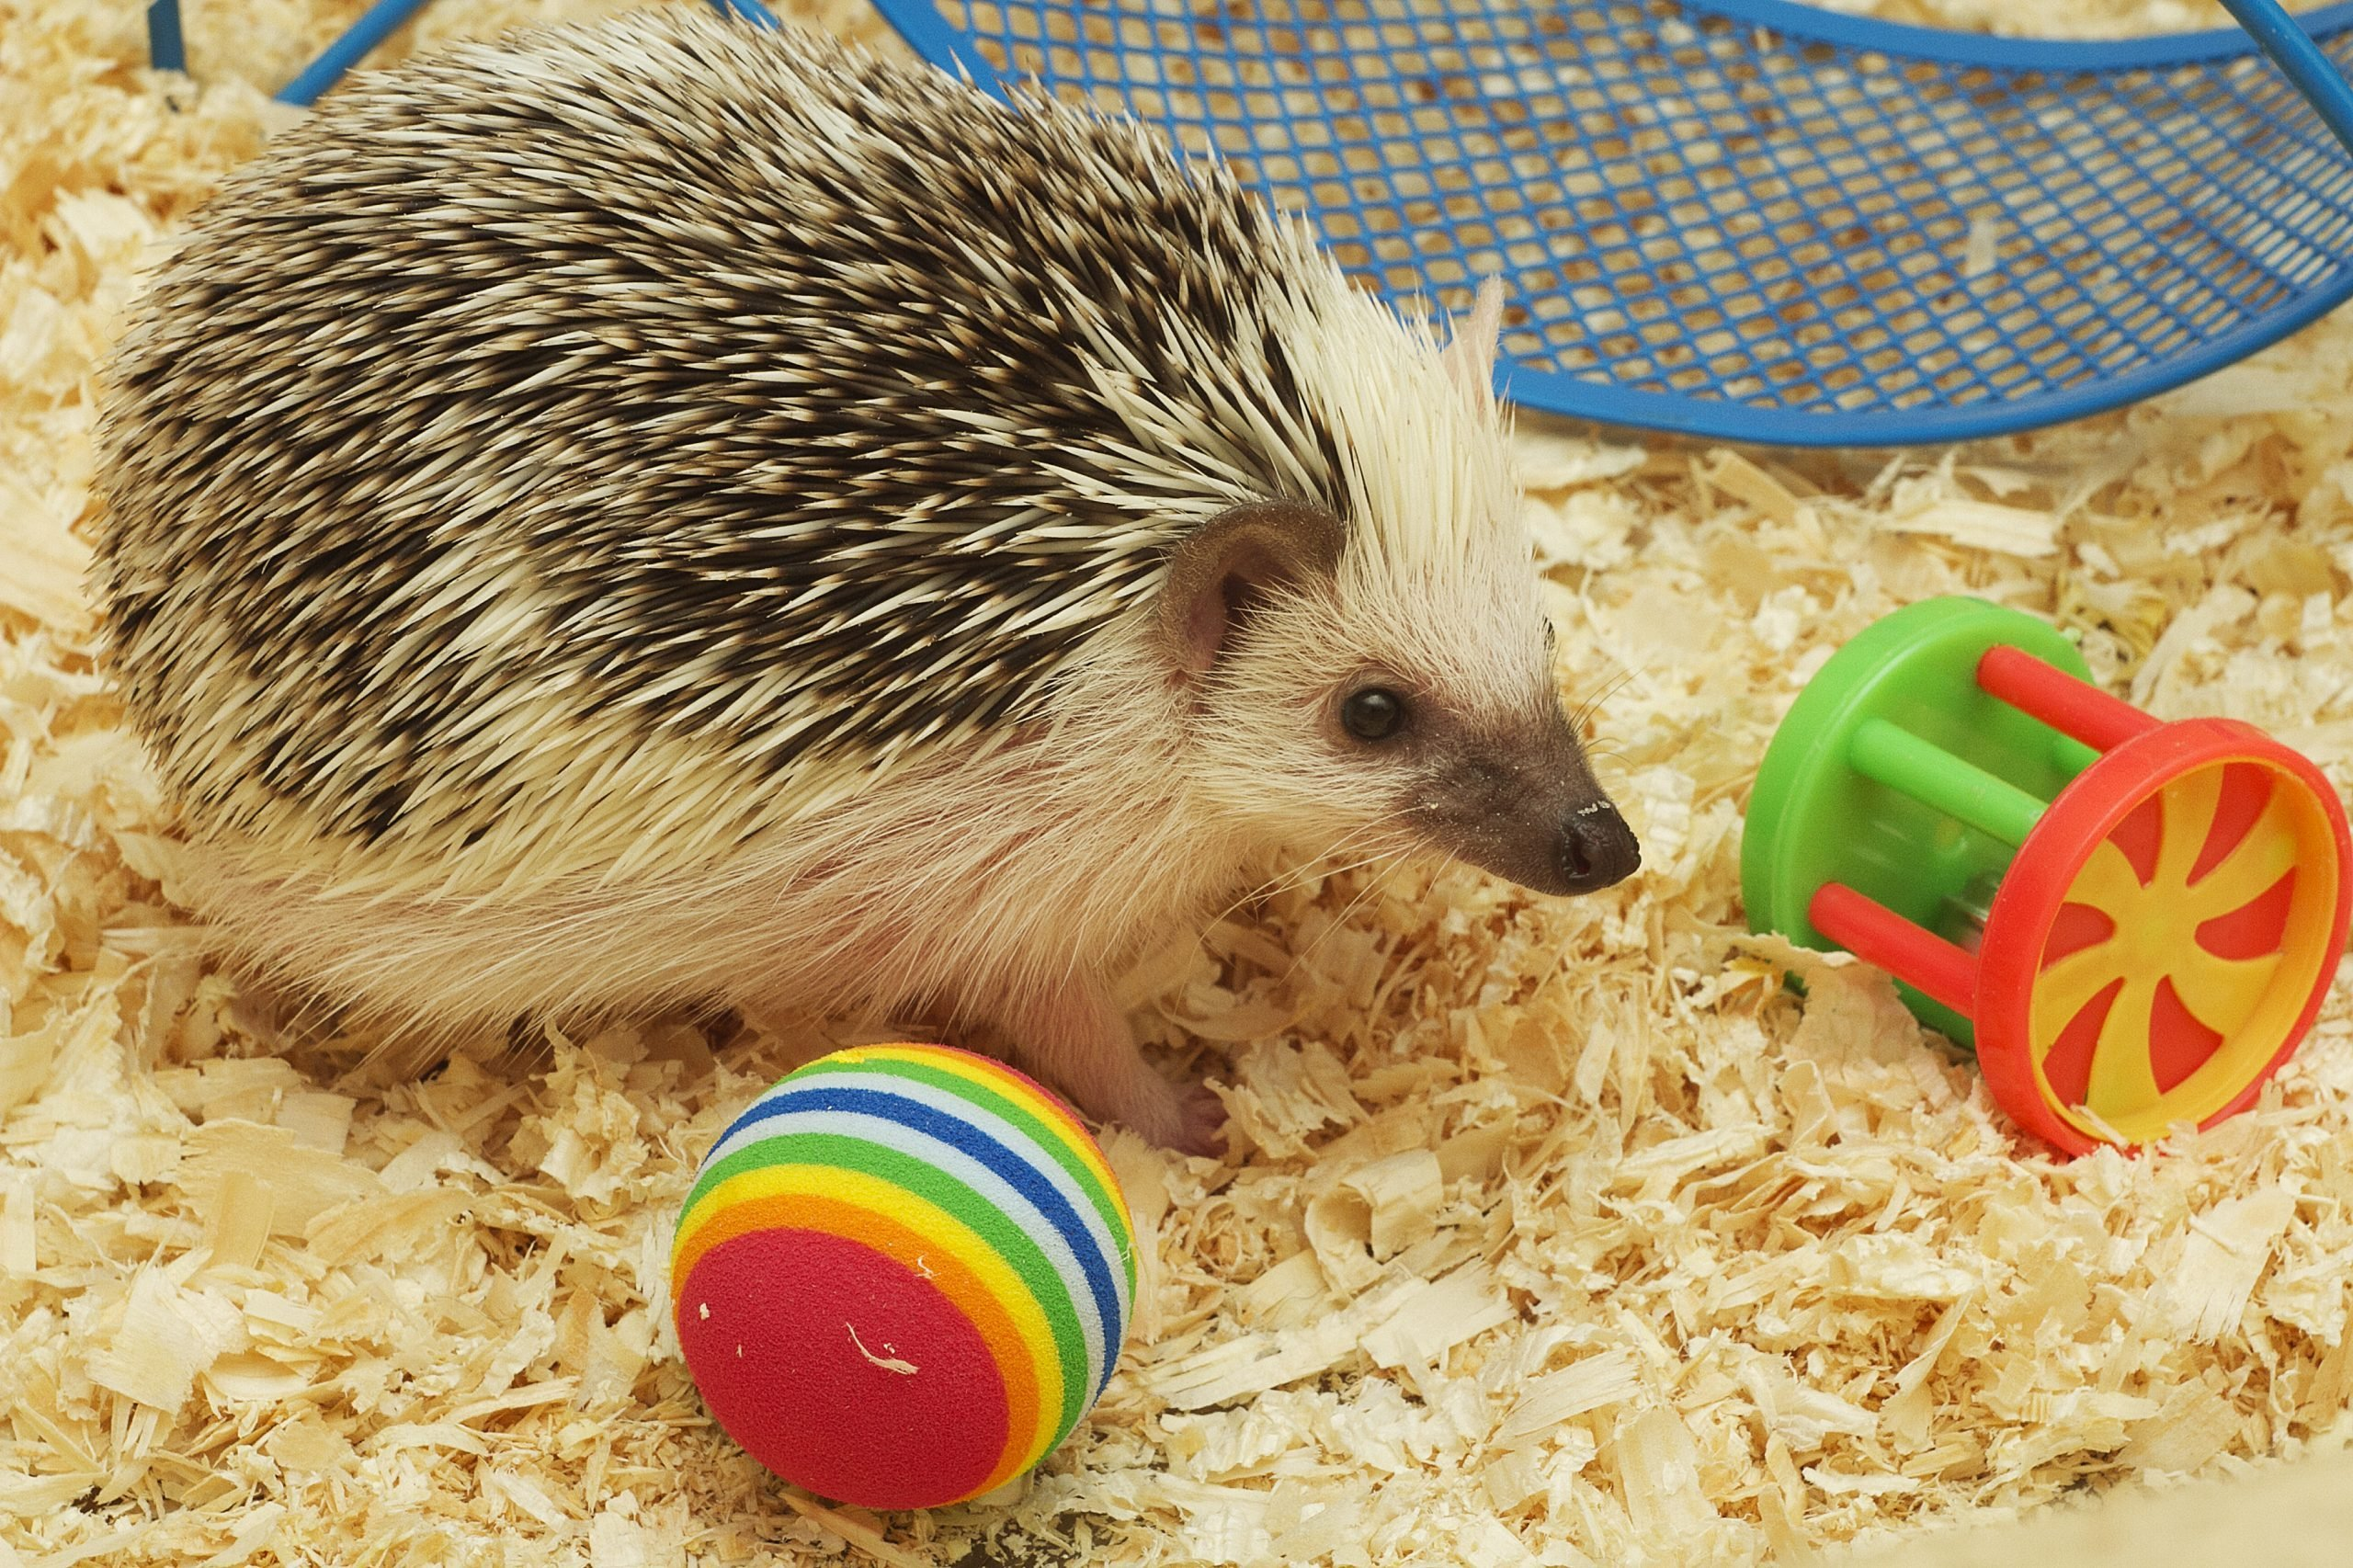 cute and fun hedgehog baby with breeding facility background